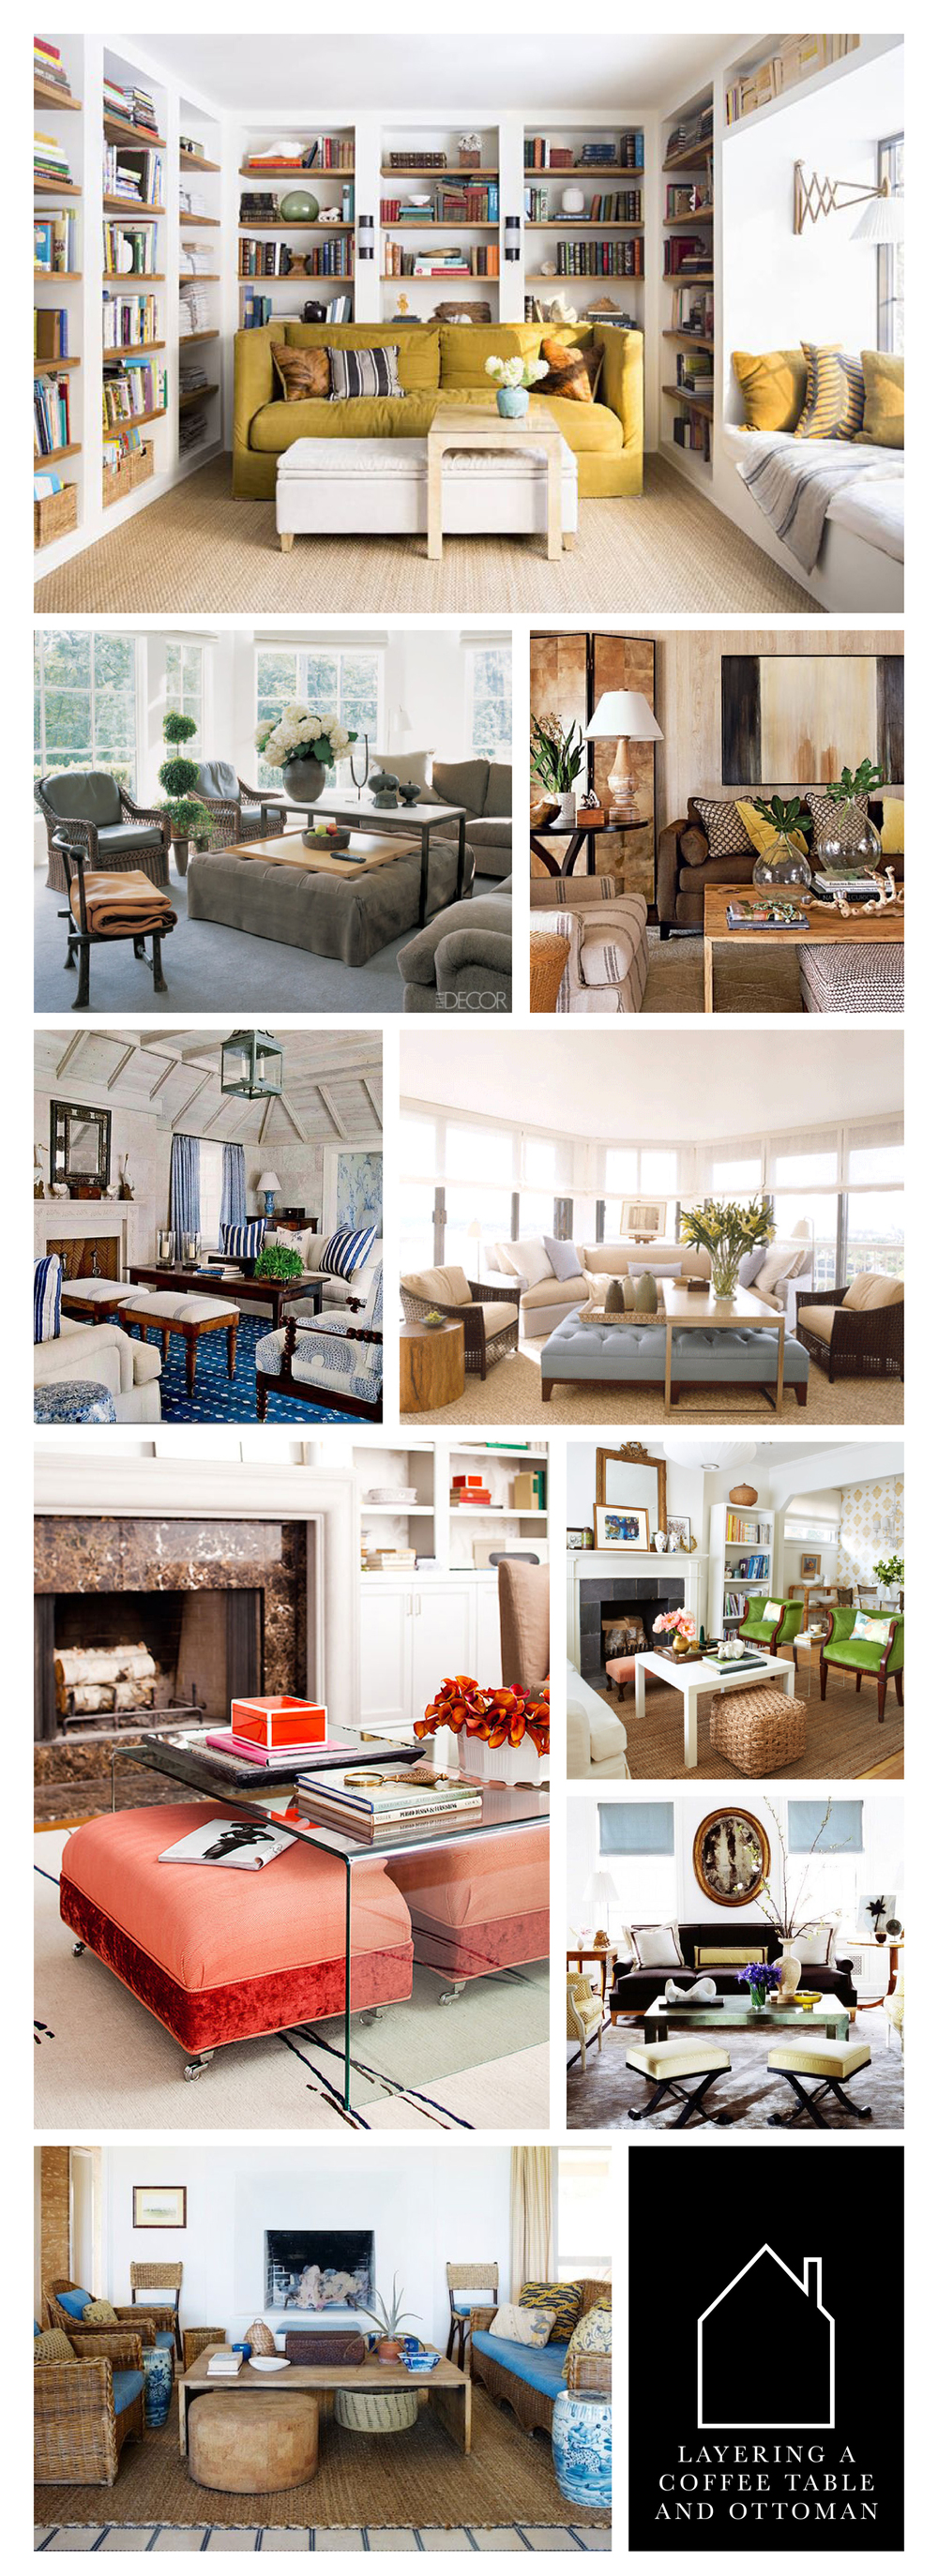 from top left - home of  Lauren Liess  via  Domaine Home  - via  Elle Decor  - source unknown - source unknown - design by  Vicente Wolf  via  House Beautiful  - via  Better Homes and Gardens  - home of Margot Austin via  House & Home  - design by  Nate Berkus  via  My Domaine  -  design by  Tom Scheerer